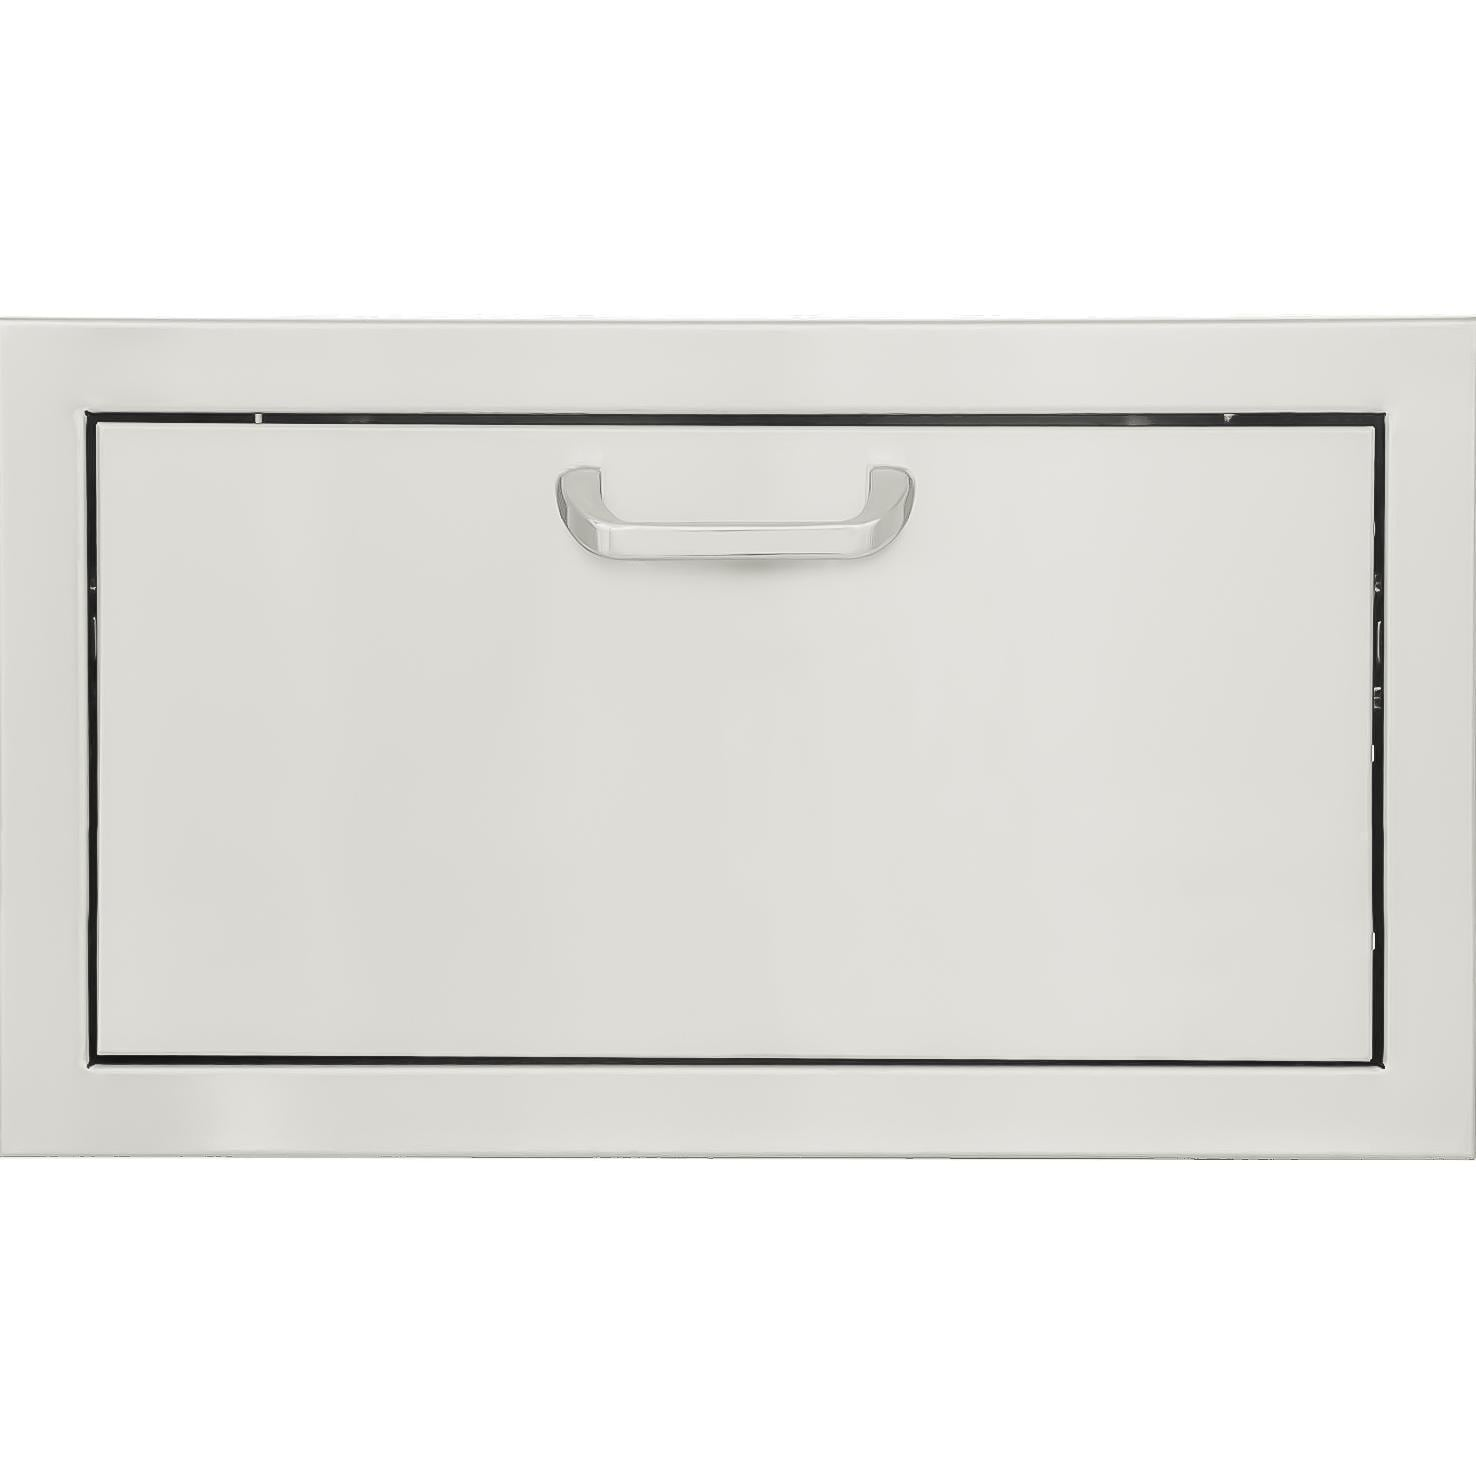 BBQGuys  Signature Series 30 X 15 inch Stainless Steel Single Access Drawer - BBQ-260-1DR15